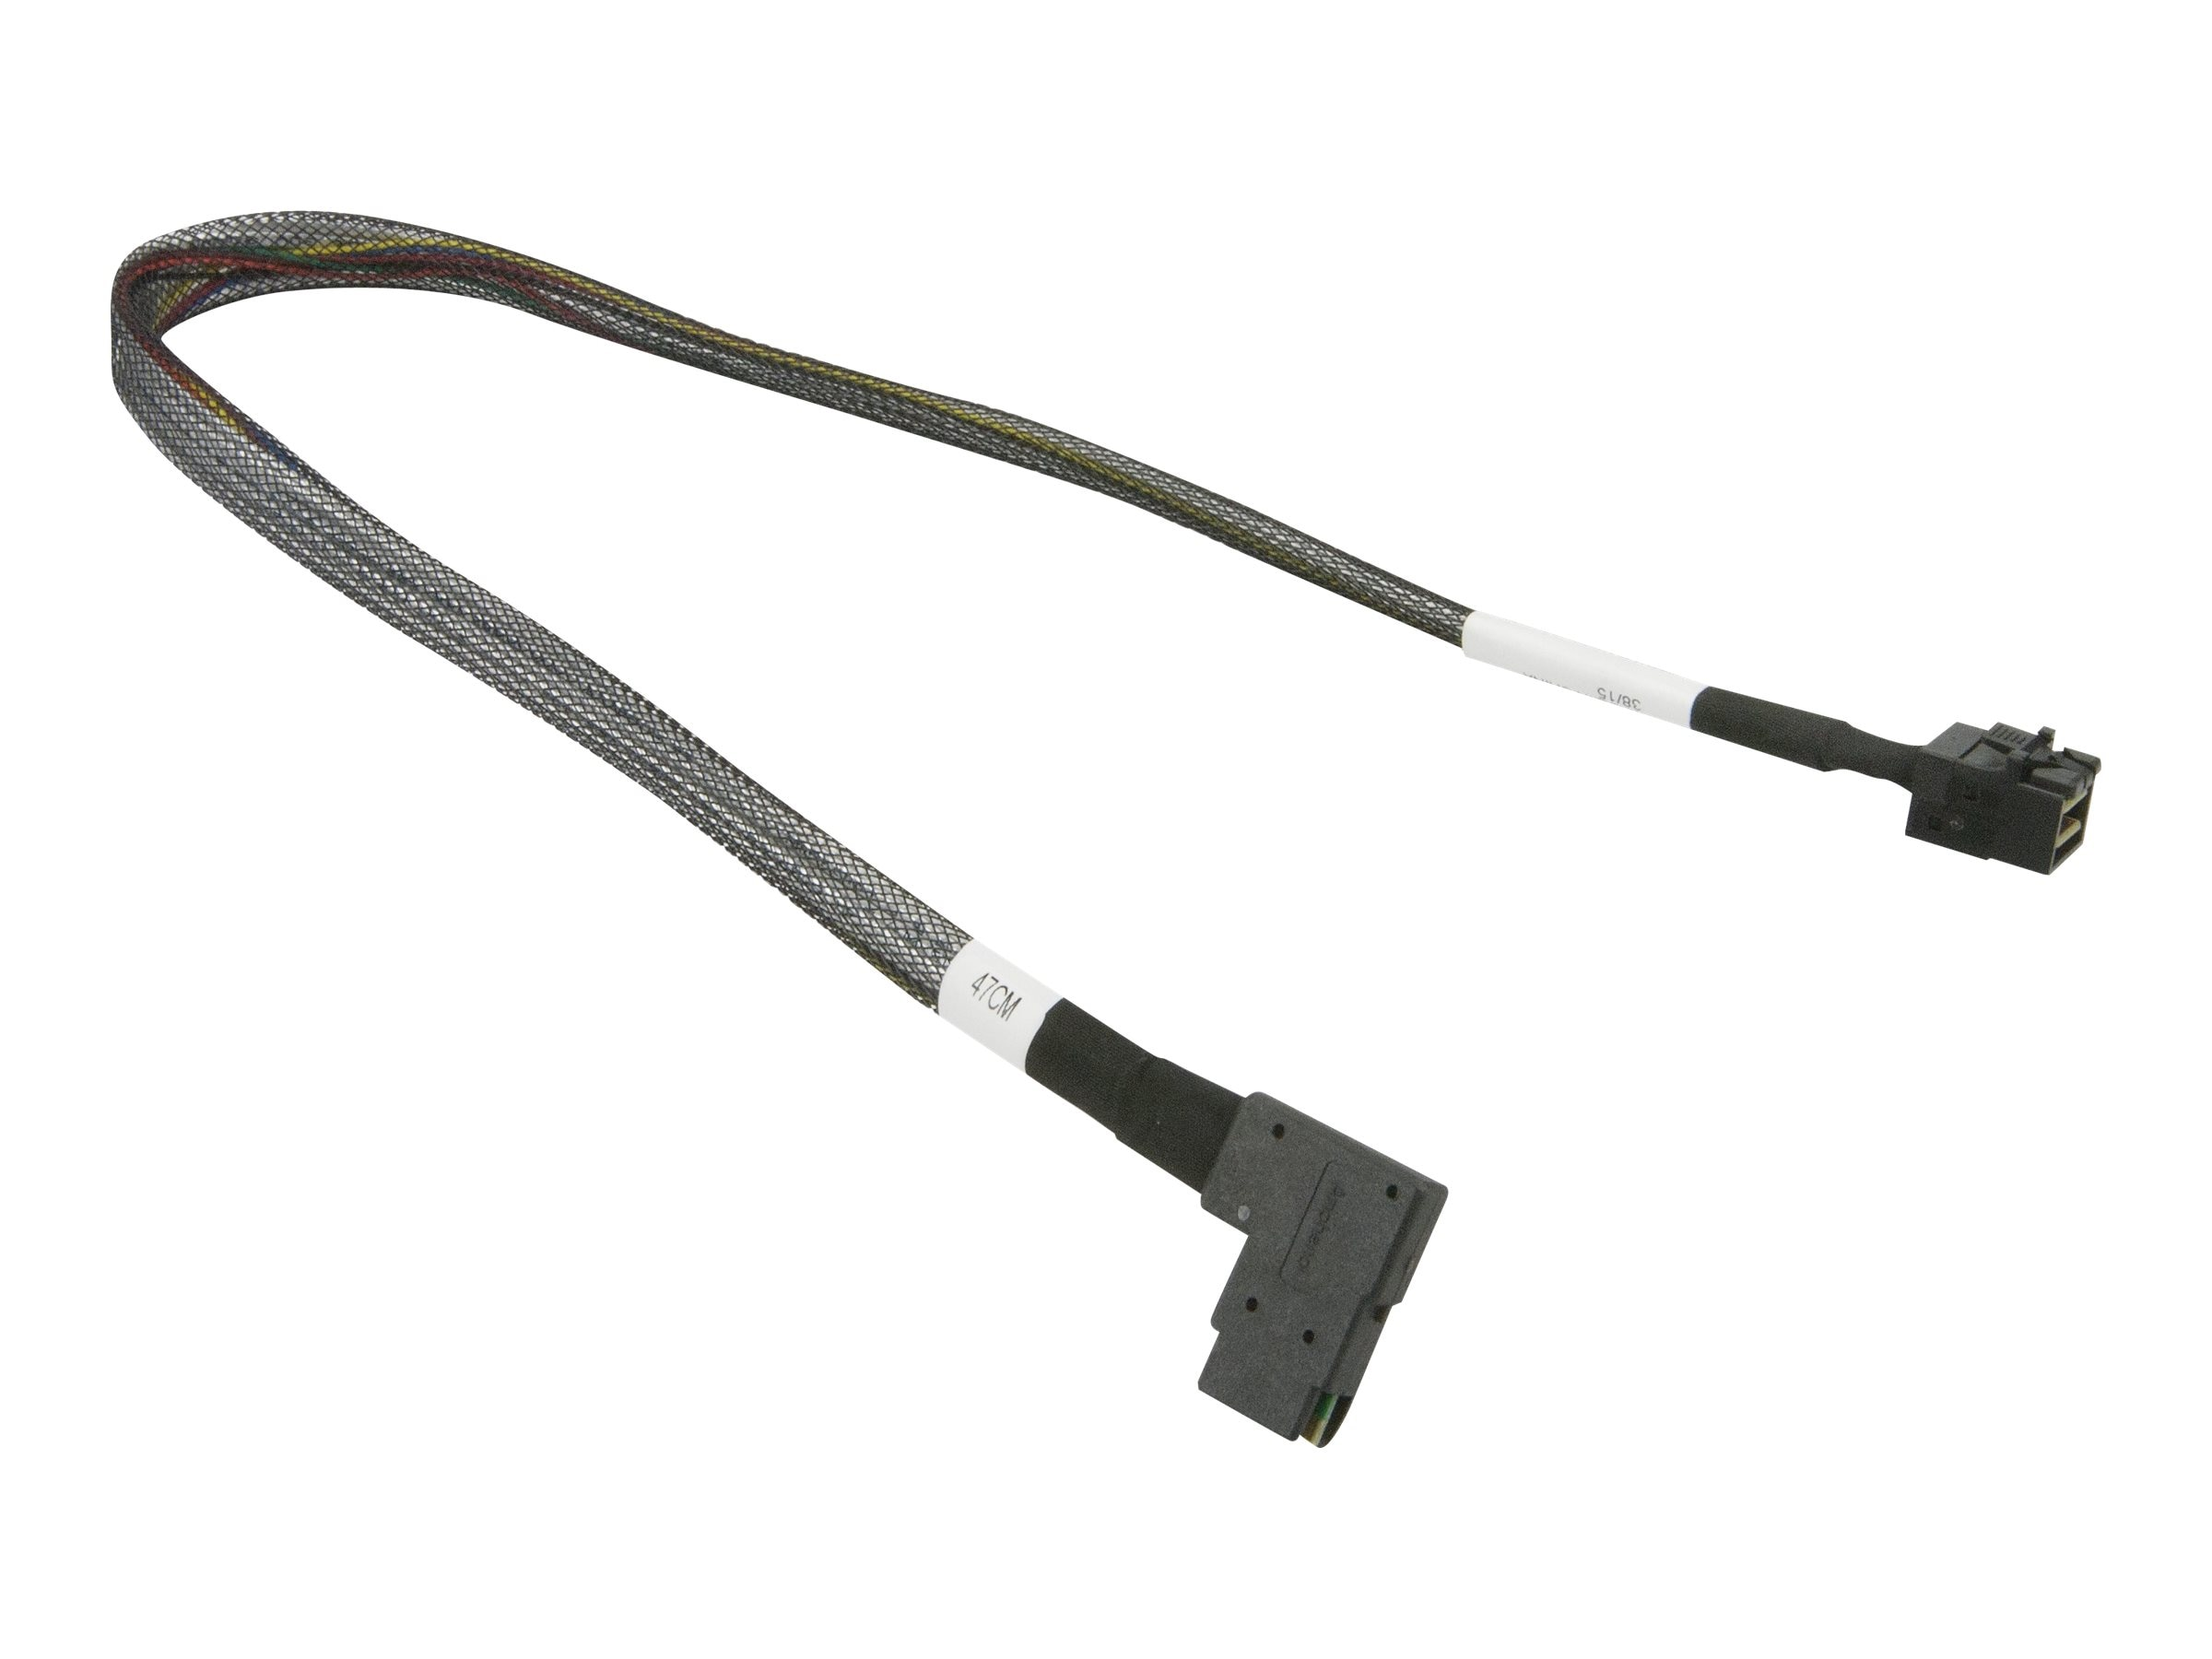 Supermicro 30AWG miniSAS to miniSAS HD Cable, 47cm